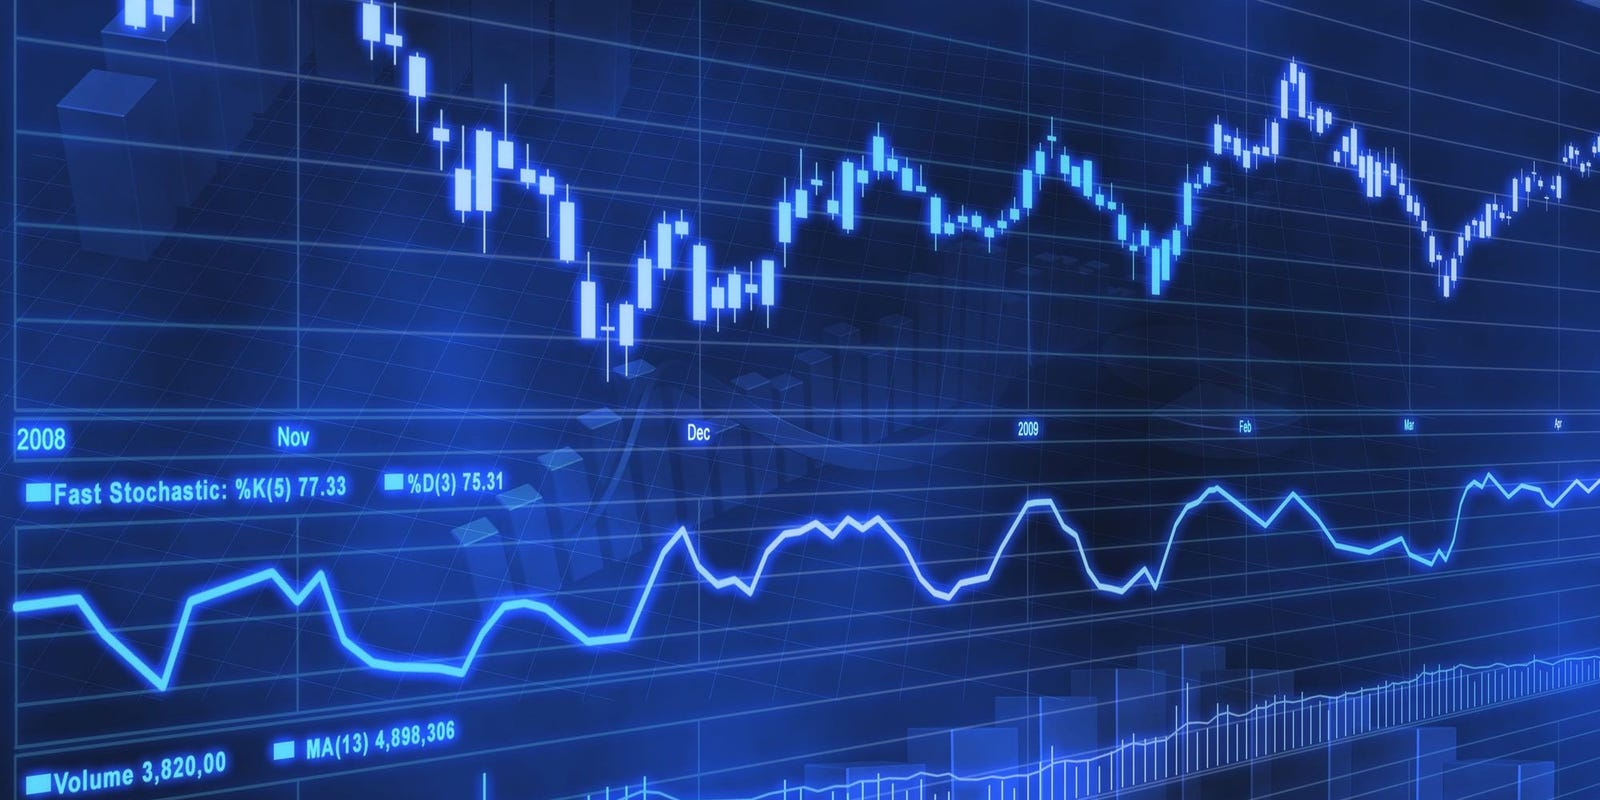 Markets reach all-time highs. Is it time to sell?